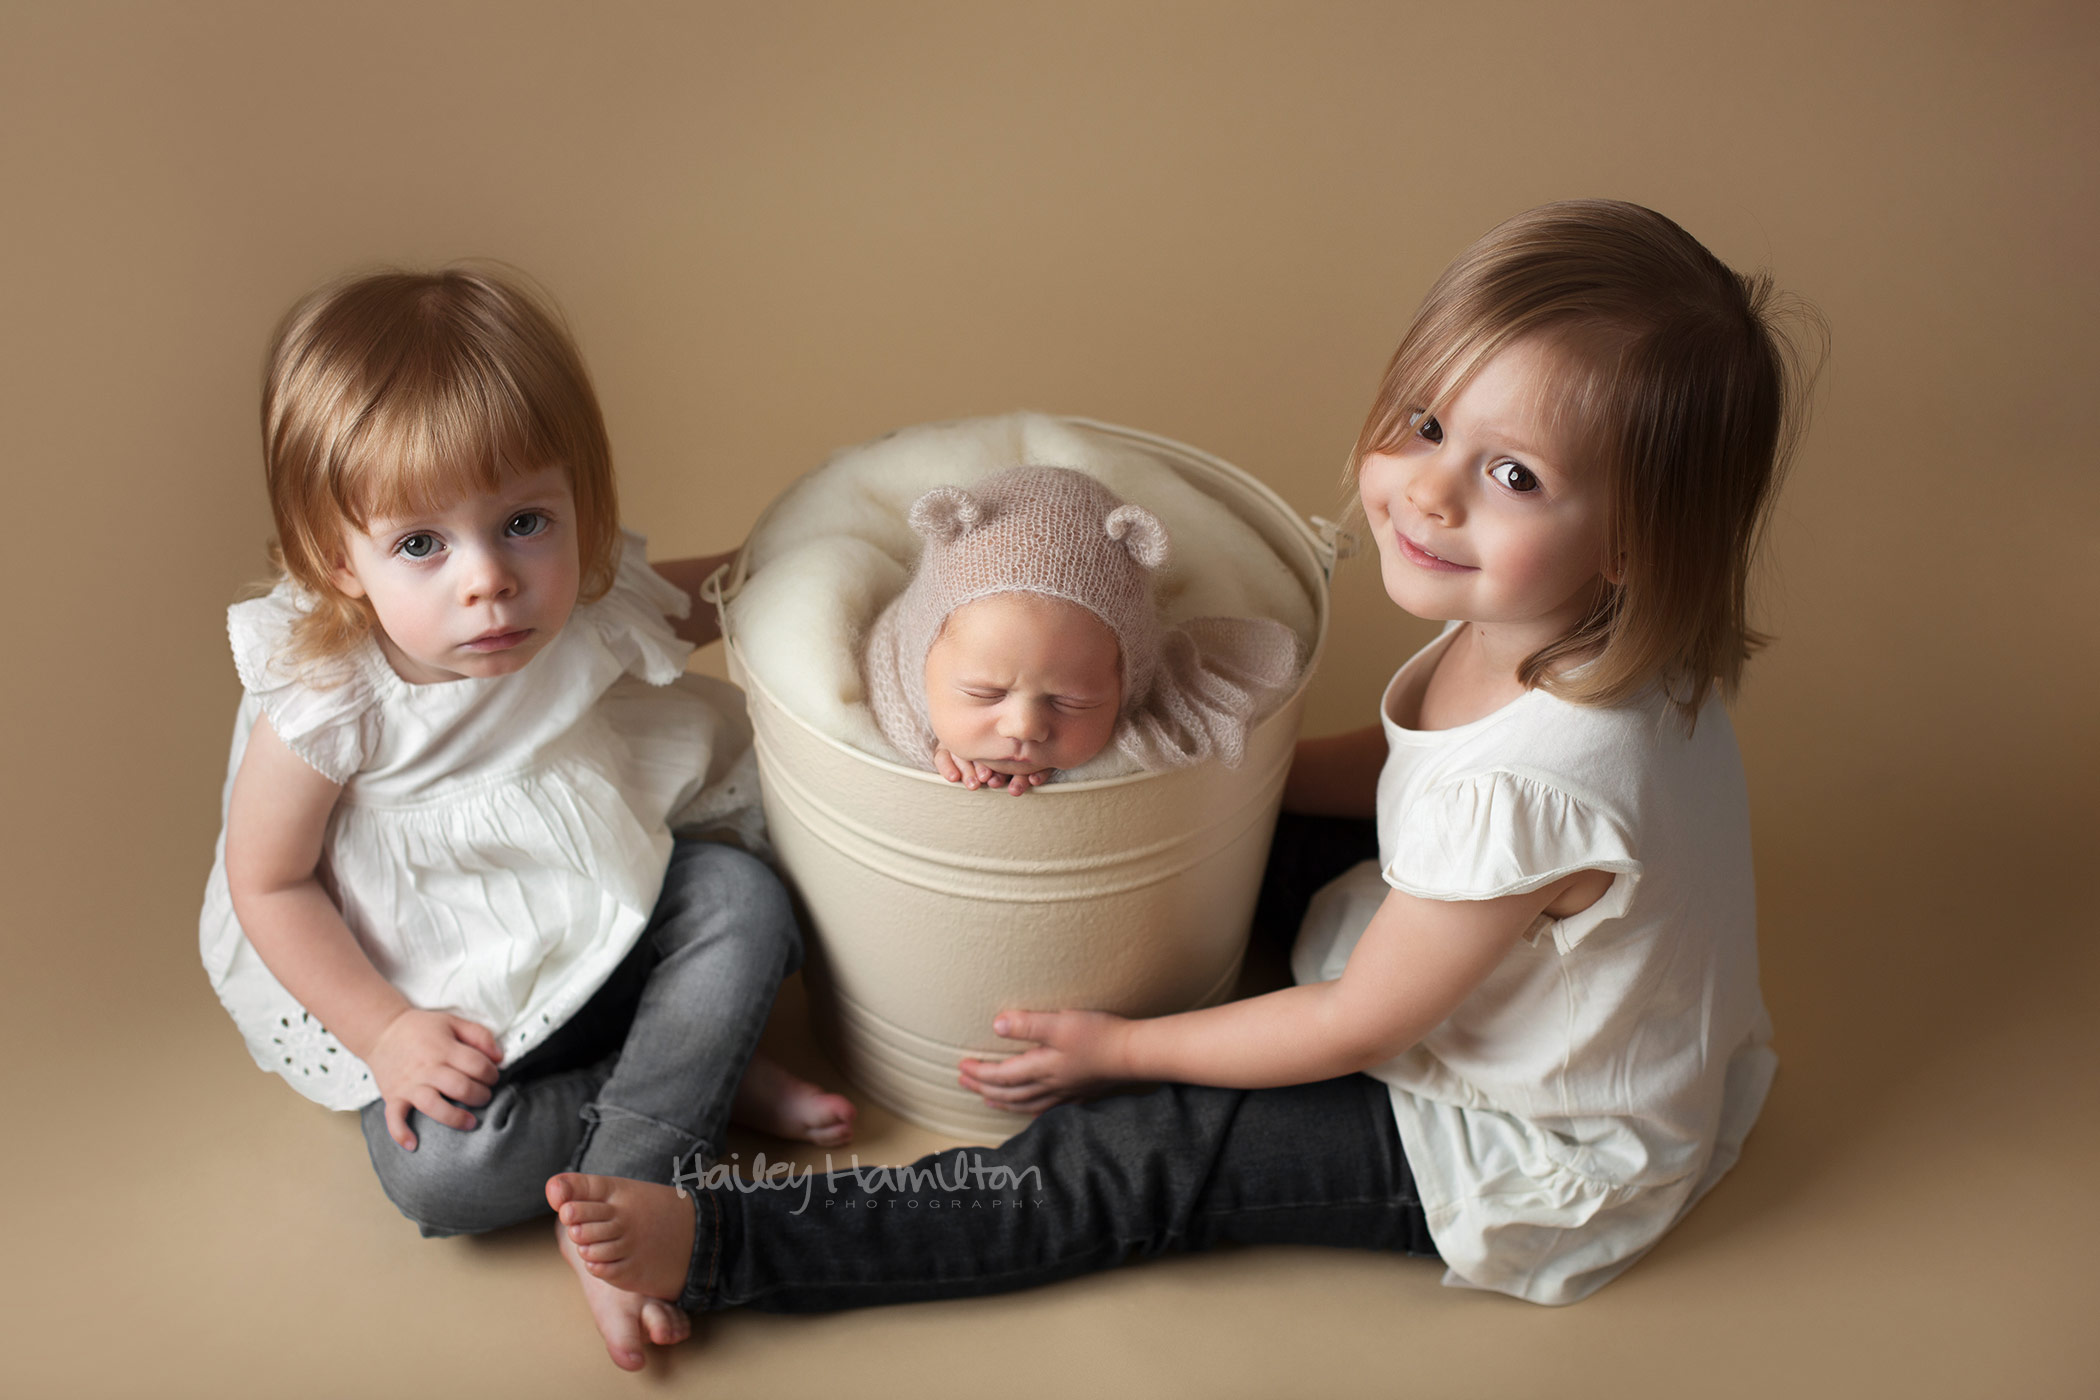 Sisiters with their Newborn Brother in a Bucket